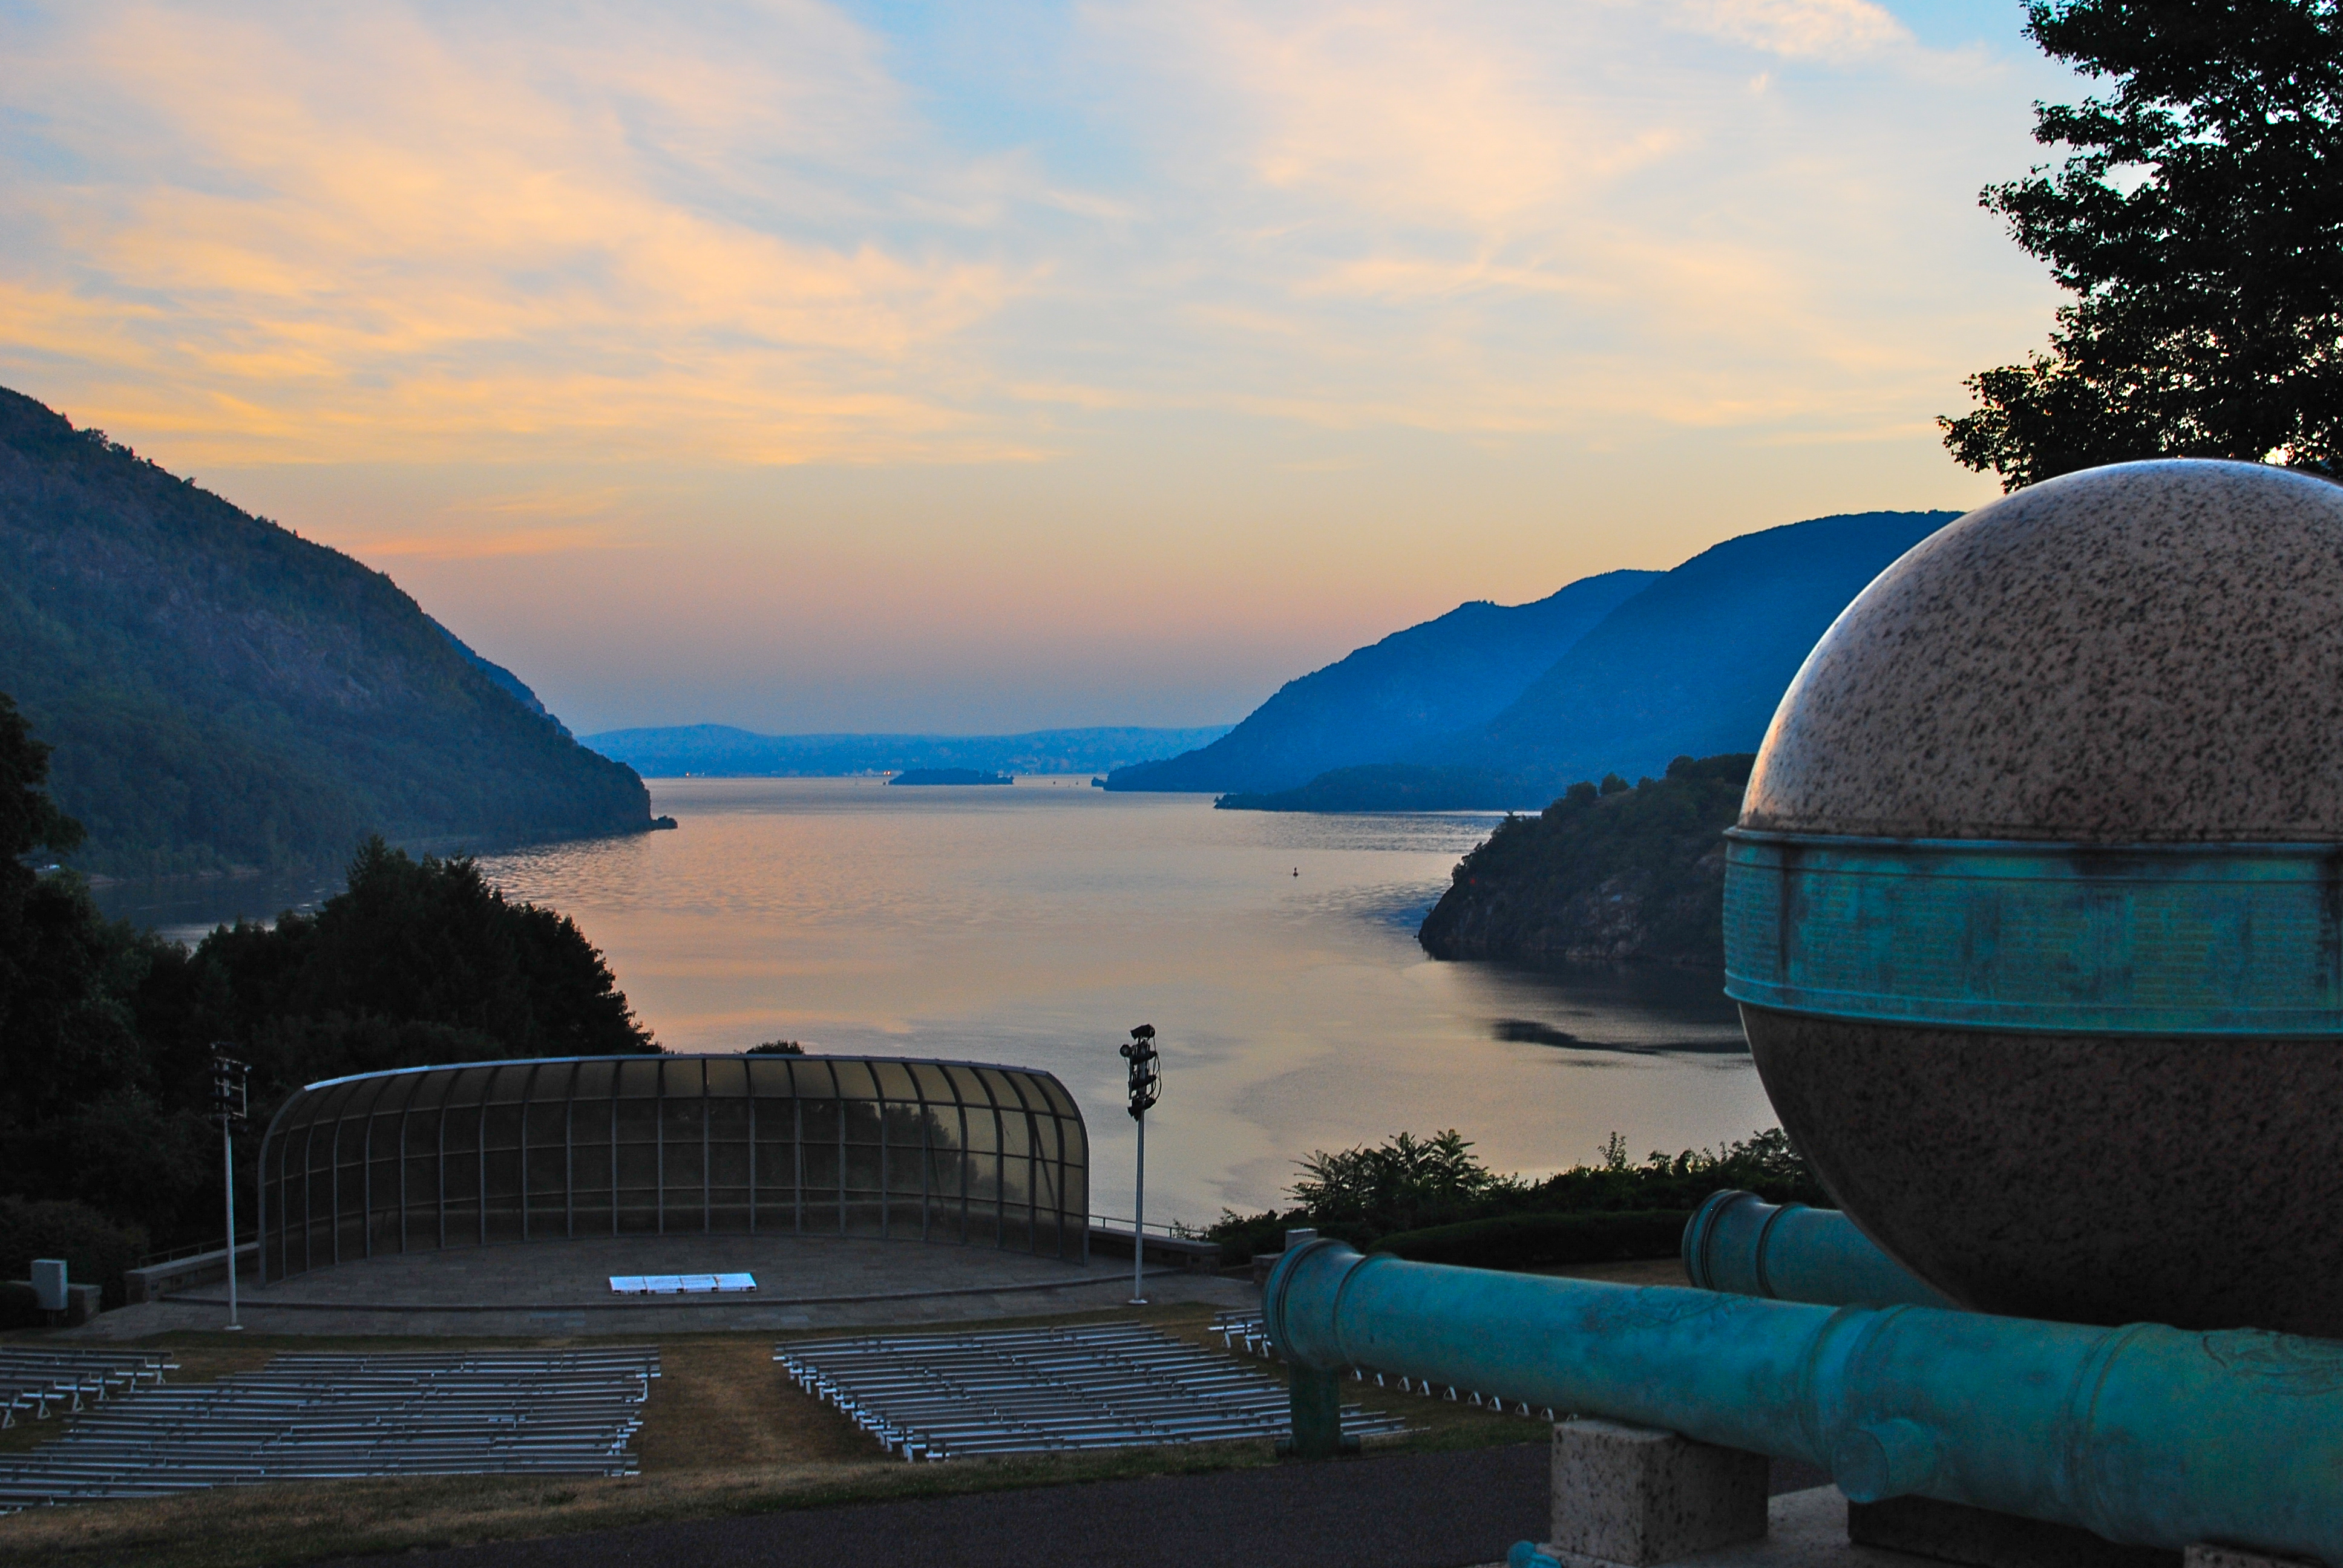 the beauty of west point The best new york tours for first-time visitors new york is the largest city in north america and the unofficial capital of the world, hosting the united nations, amnesty international, unicef, and many more international organizations.